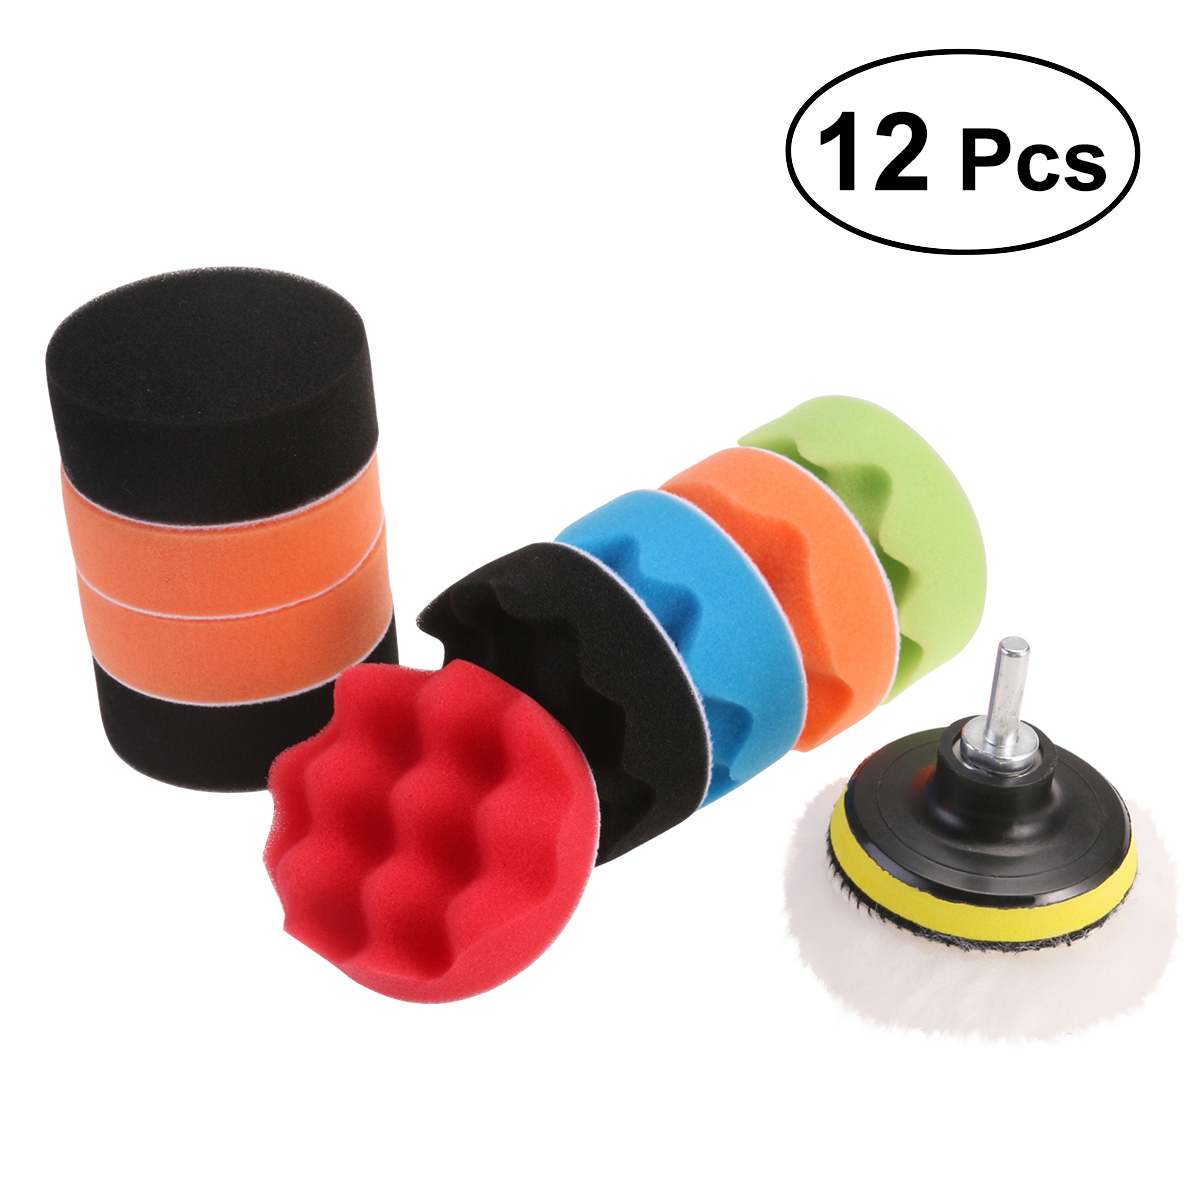 12 pcs/lot 3/4/5/6/7 inch Polishing Pads Sponge & Woolen Polishing Waxing Buffing Pads Kit Auto Car with M10 Drill Adapter makeup sponge 5 pcs